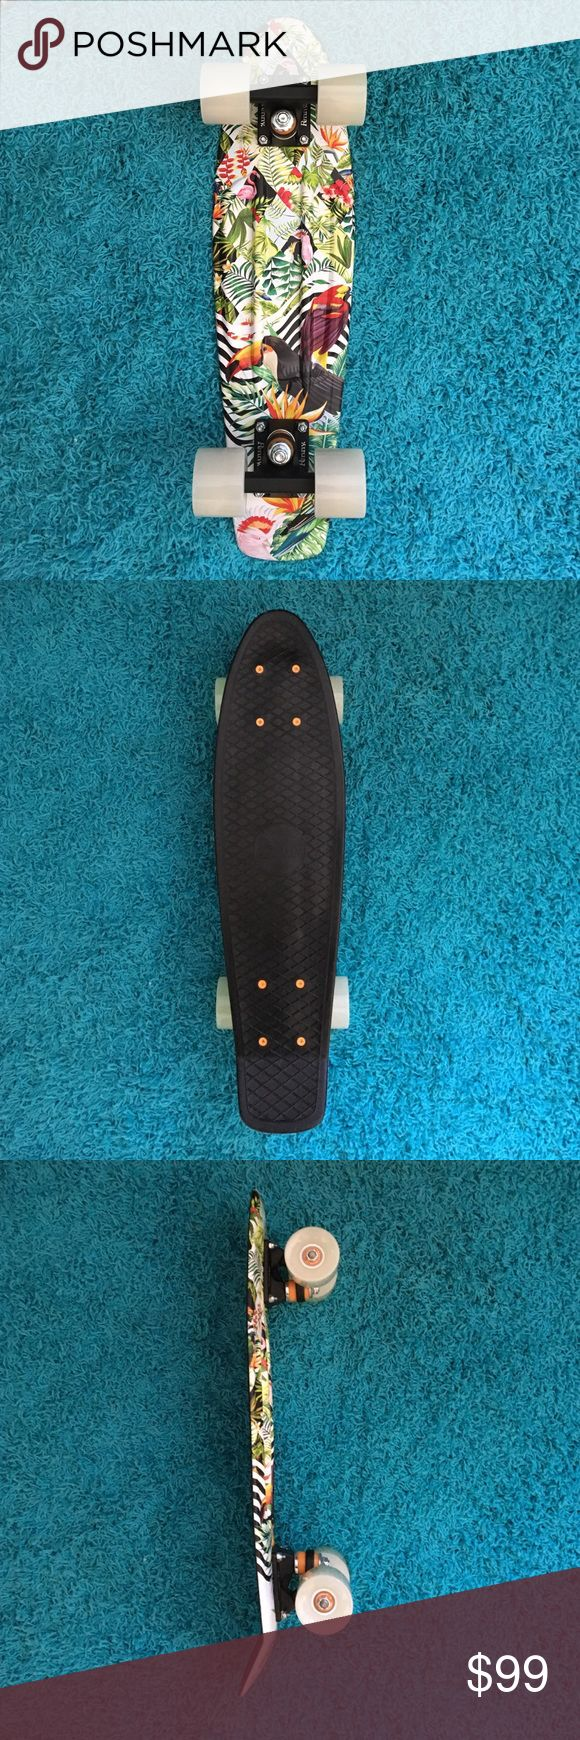 """Penny Board Toucan Tropicana 22""""  Black top, tropical bottom, glow in the dark wheels. Only used once. Other"""